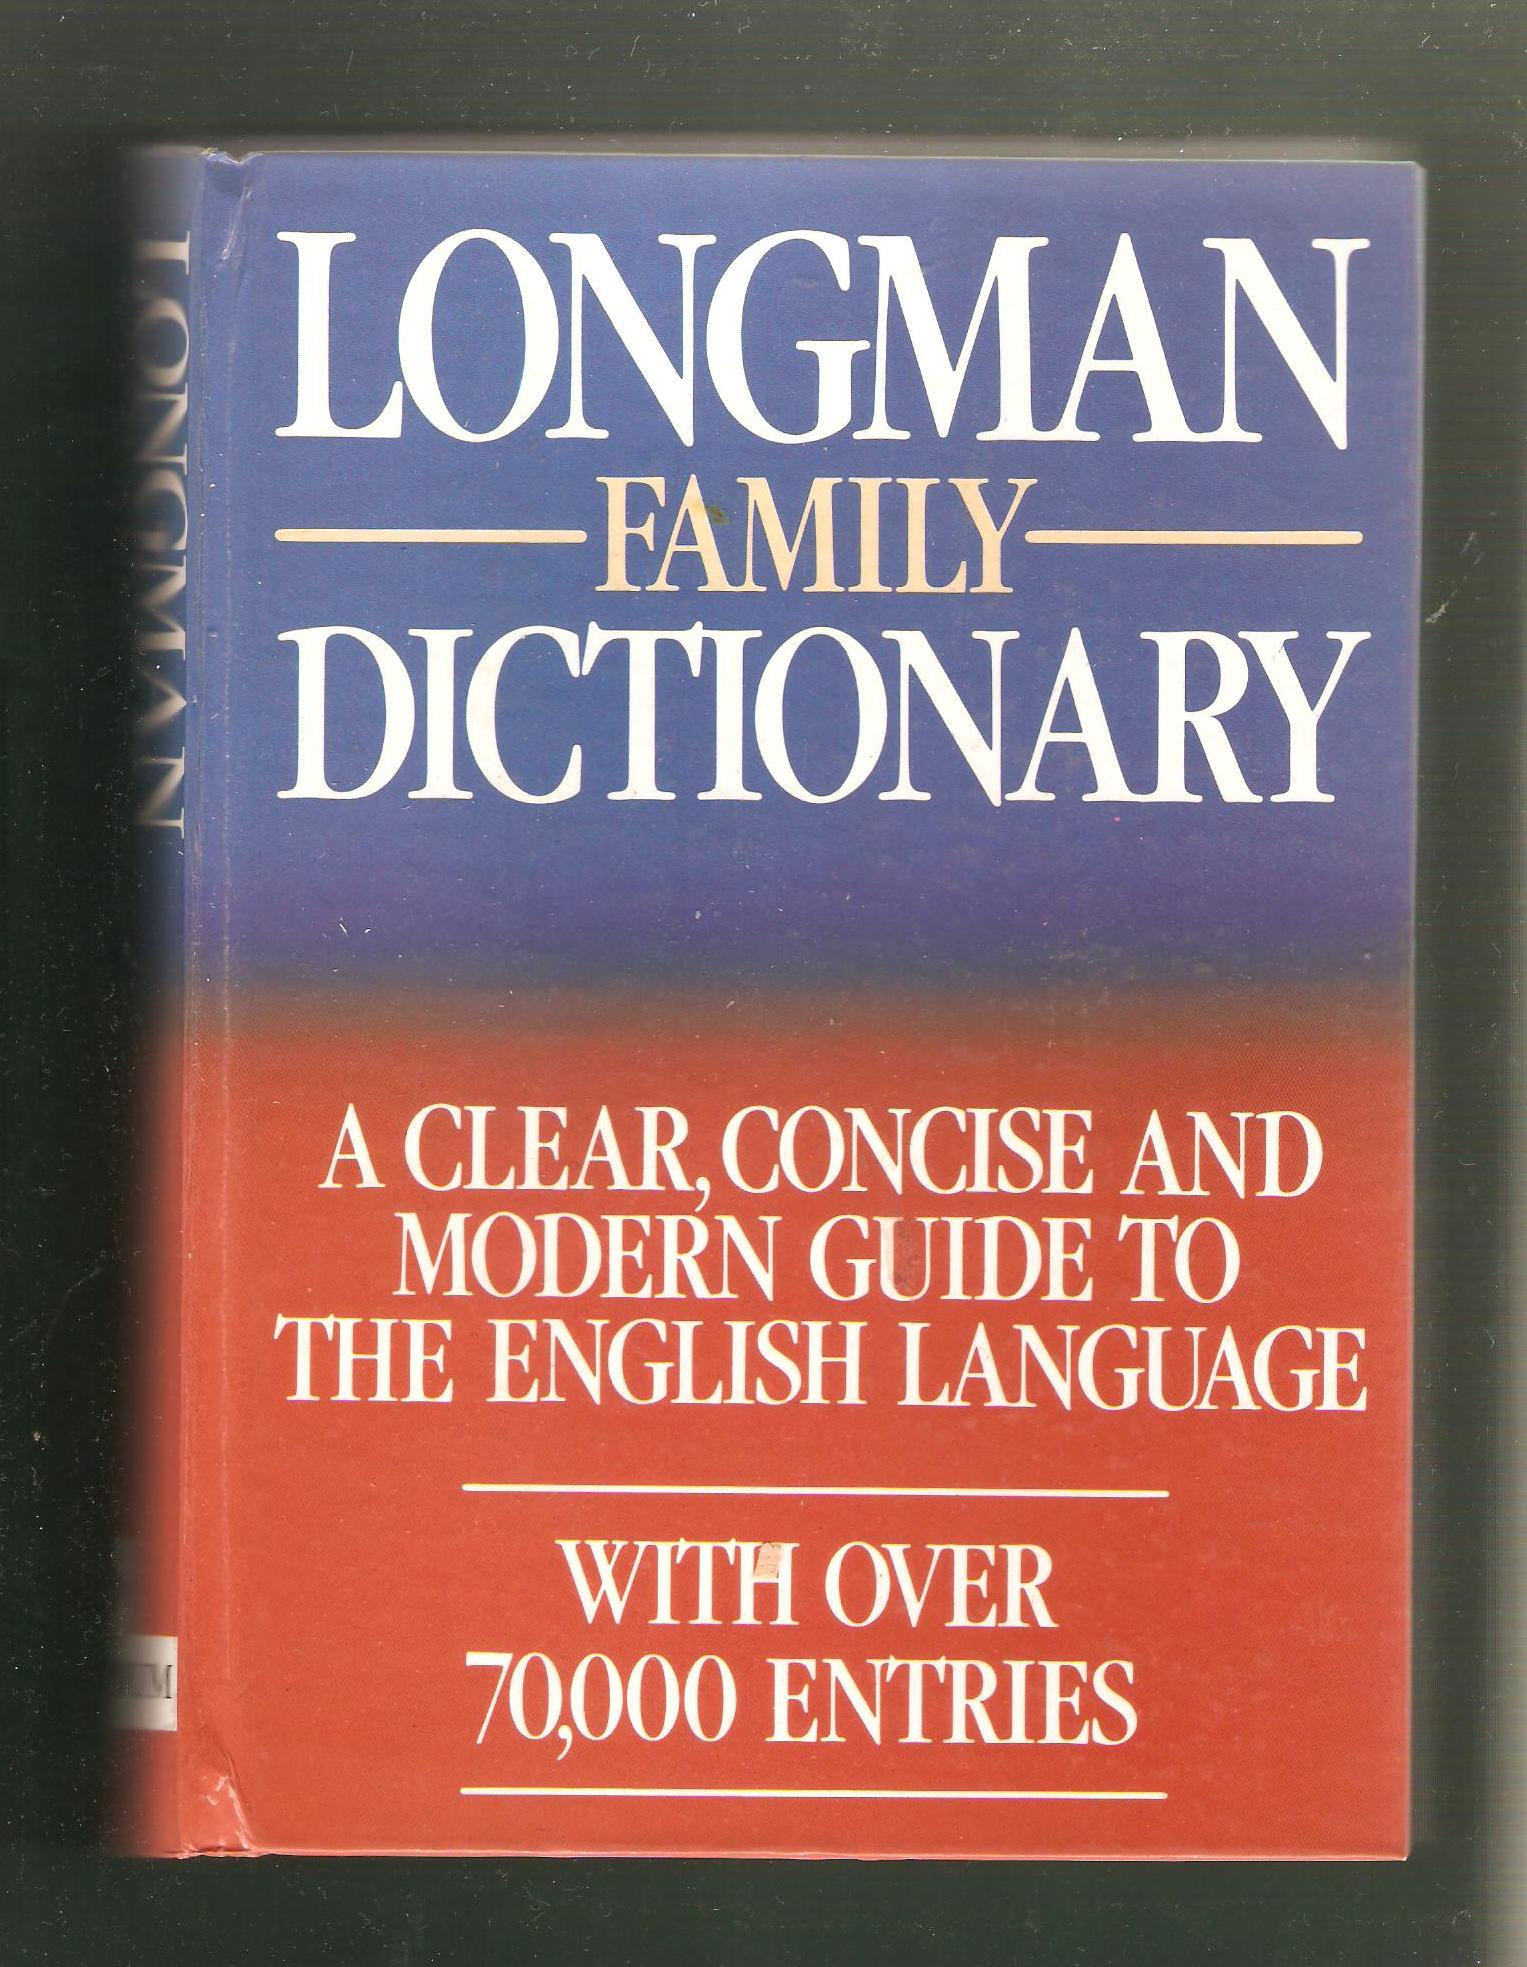 Longman Family Dictionary (anglicky)